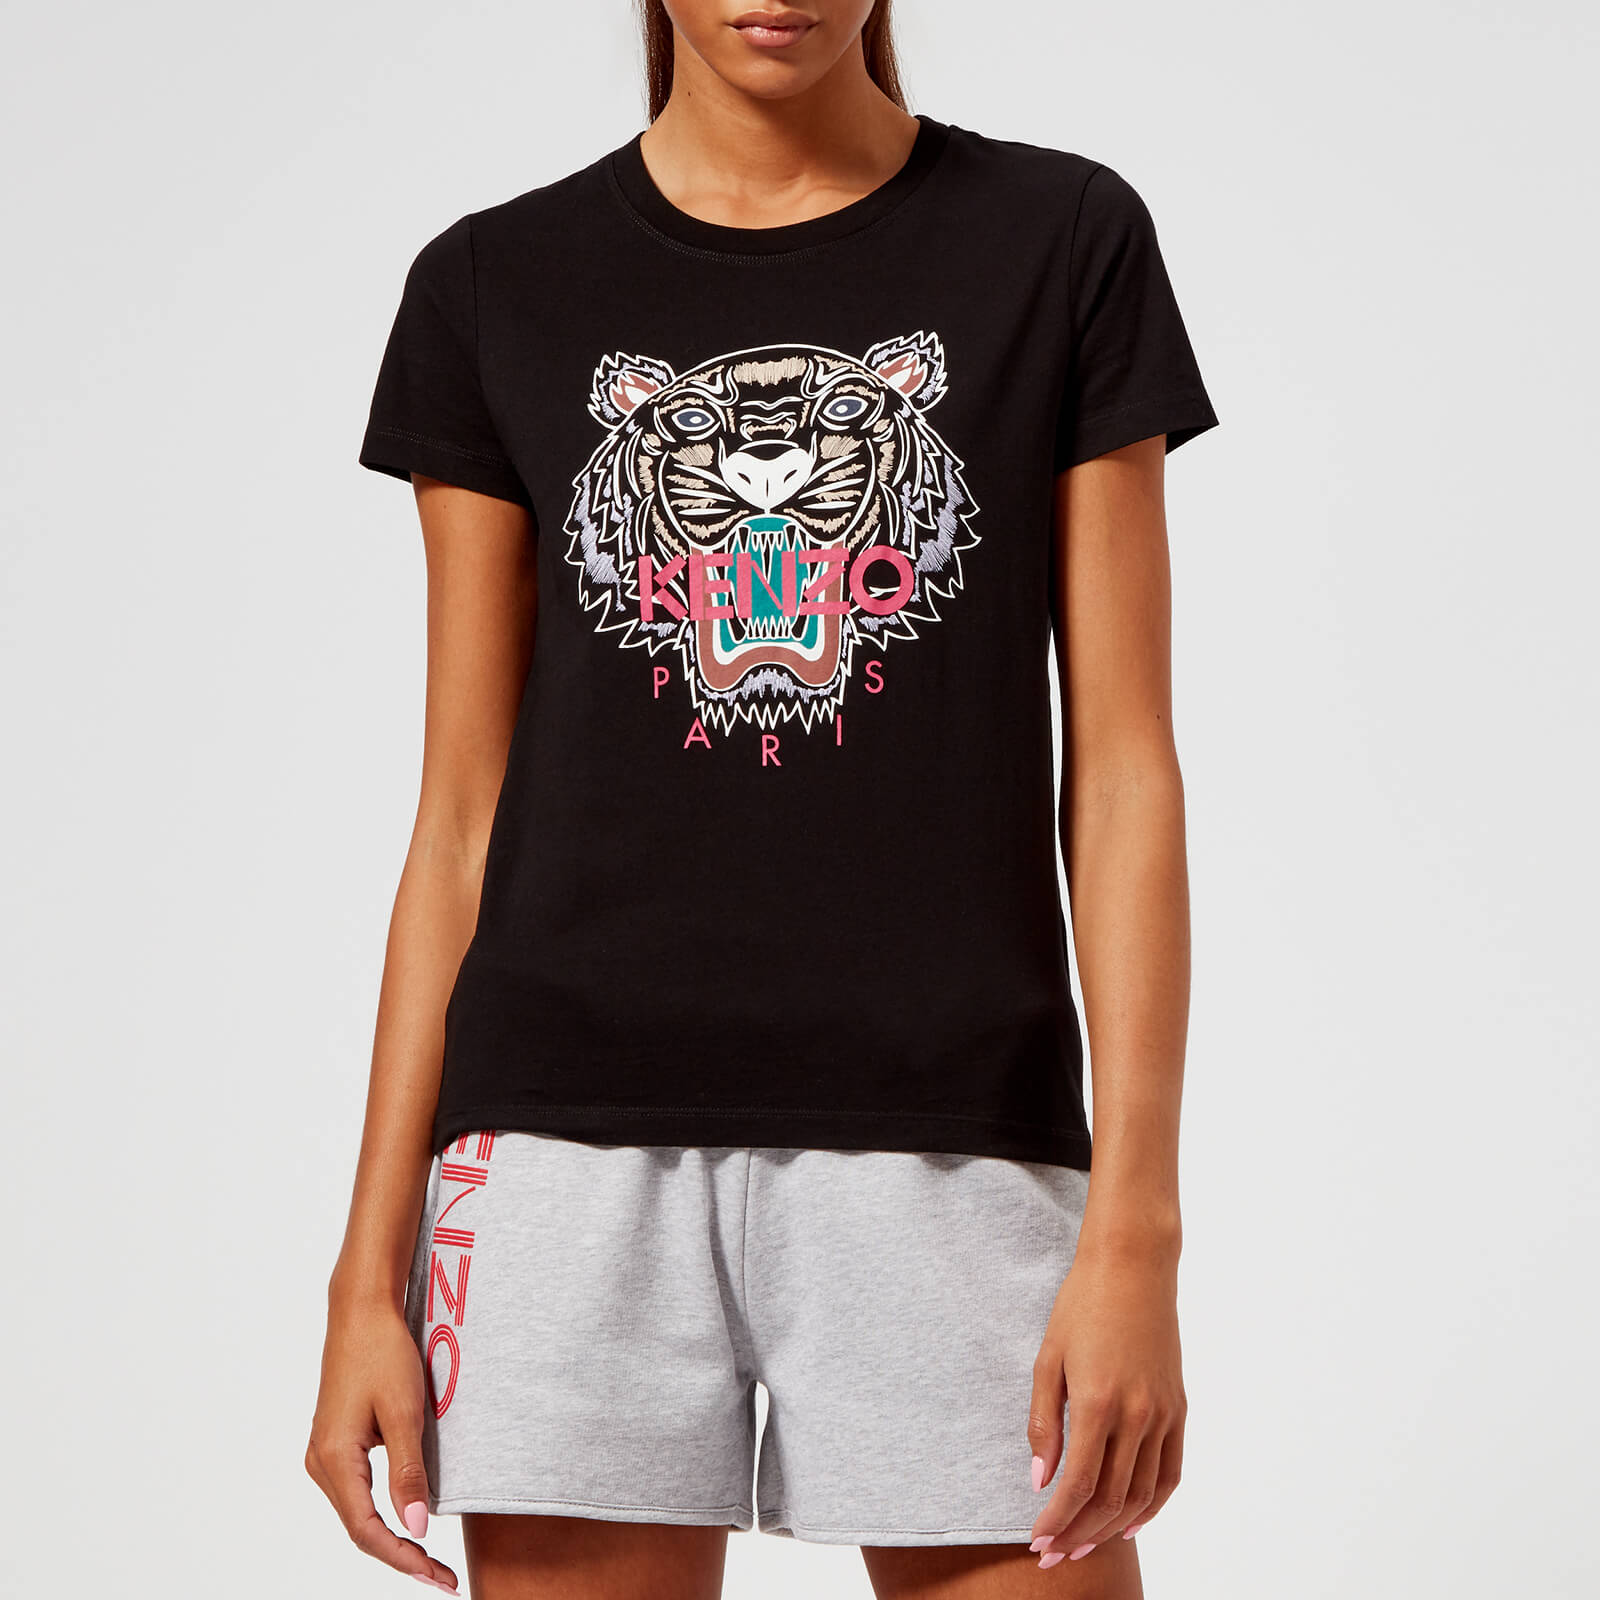 59ce502e KENZO Women's Classic Tiger Single T-Shirt - Black - Free UK Delivery over  £50